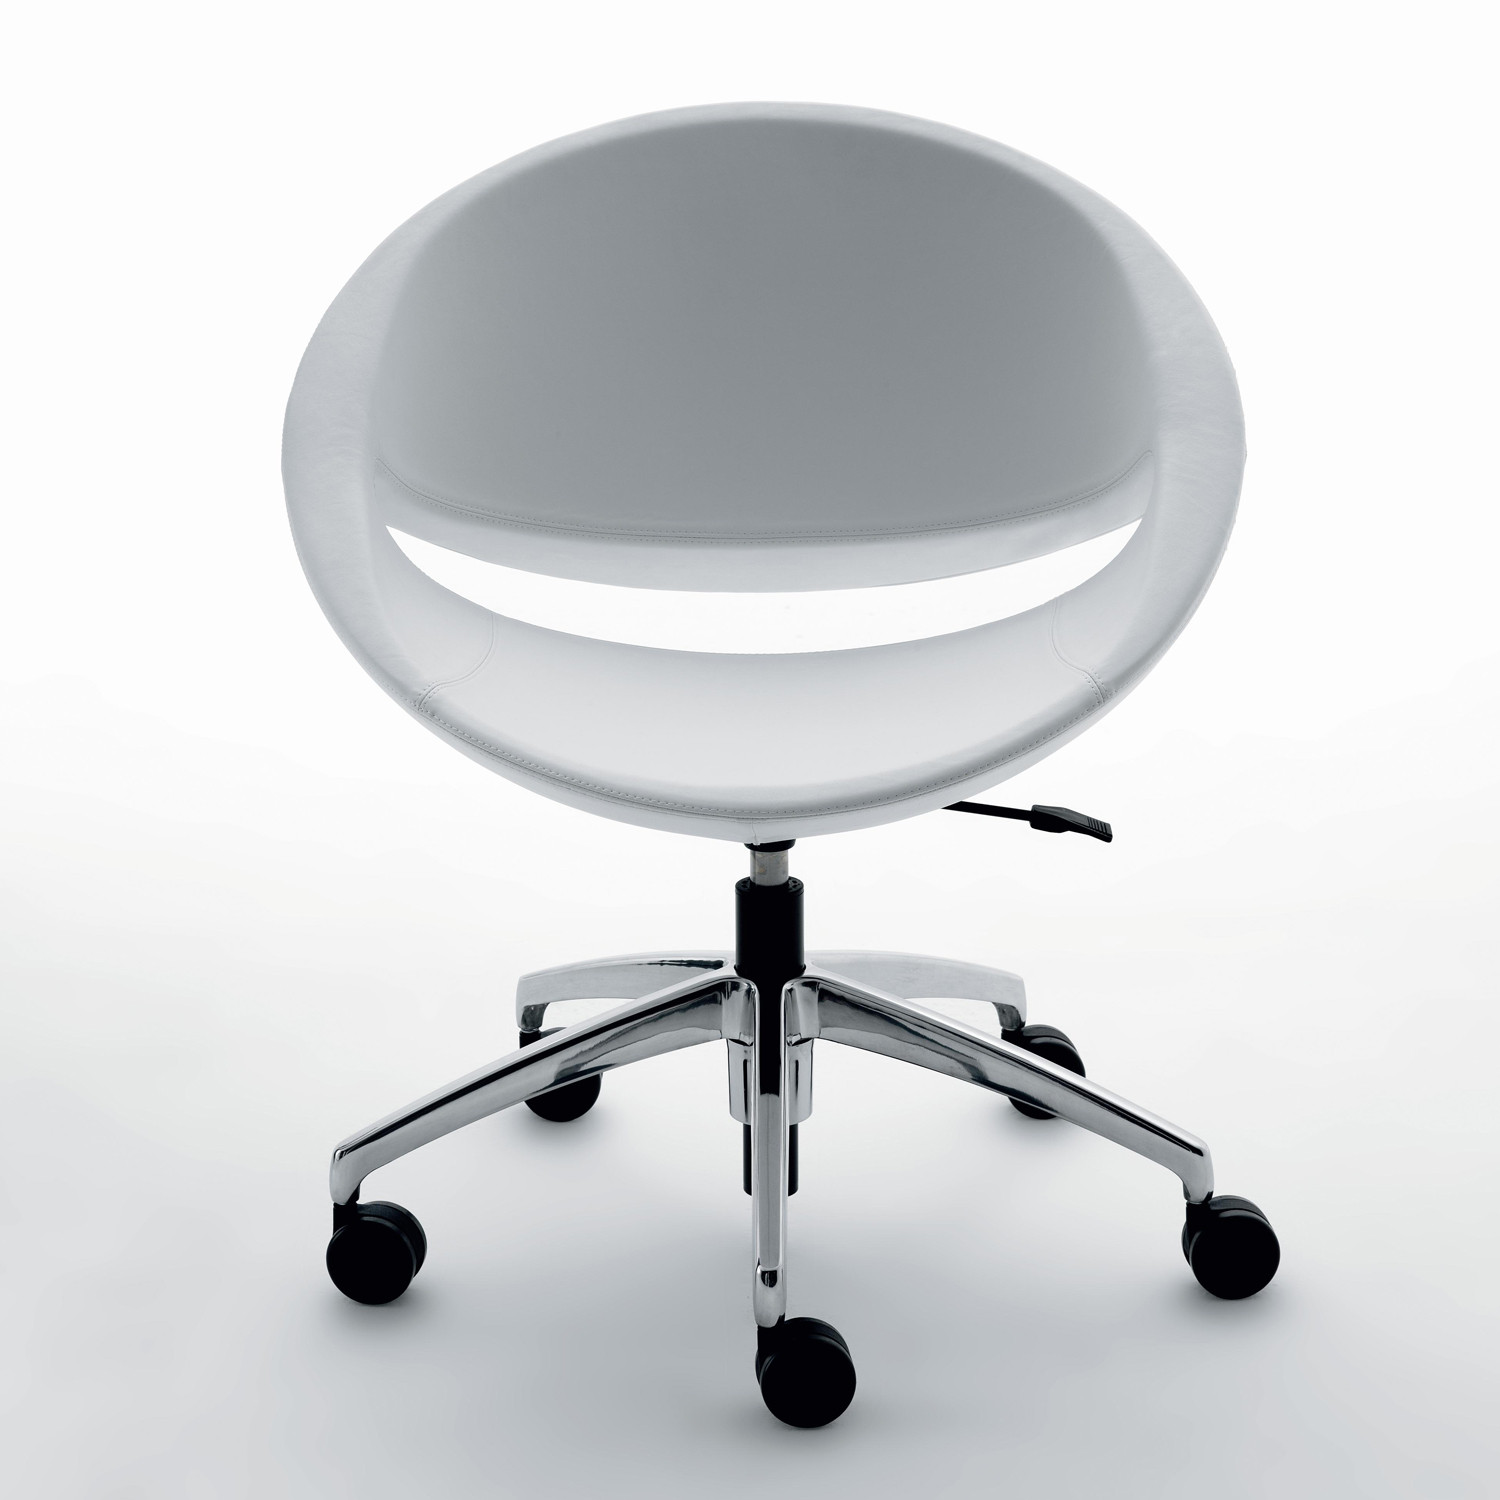 Mya Chair 5-Star Swivel base with castors